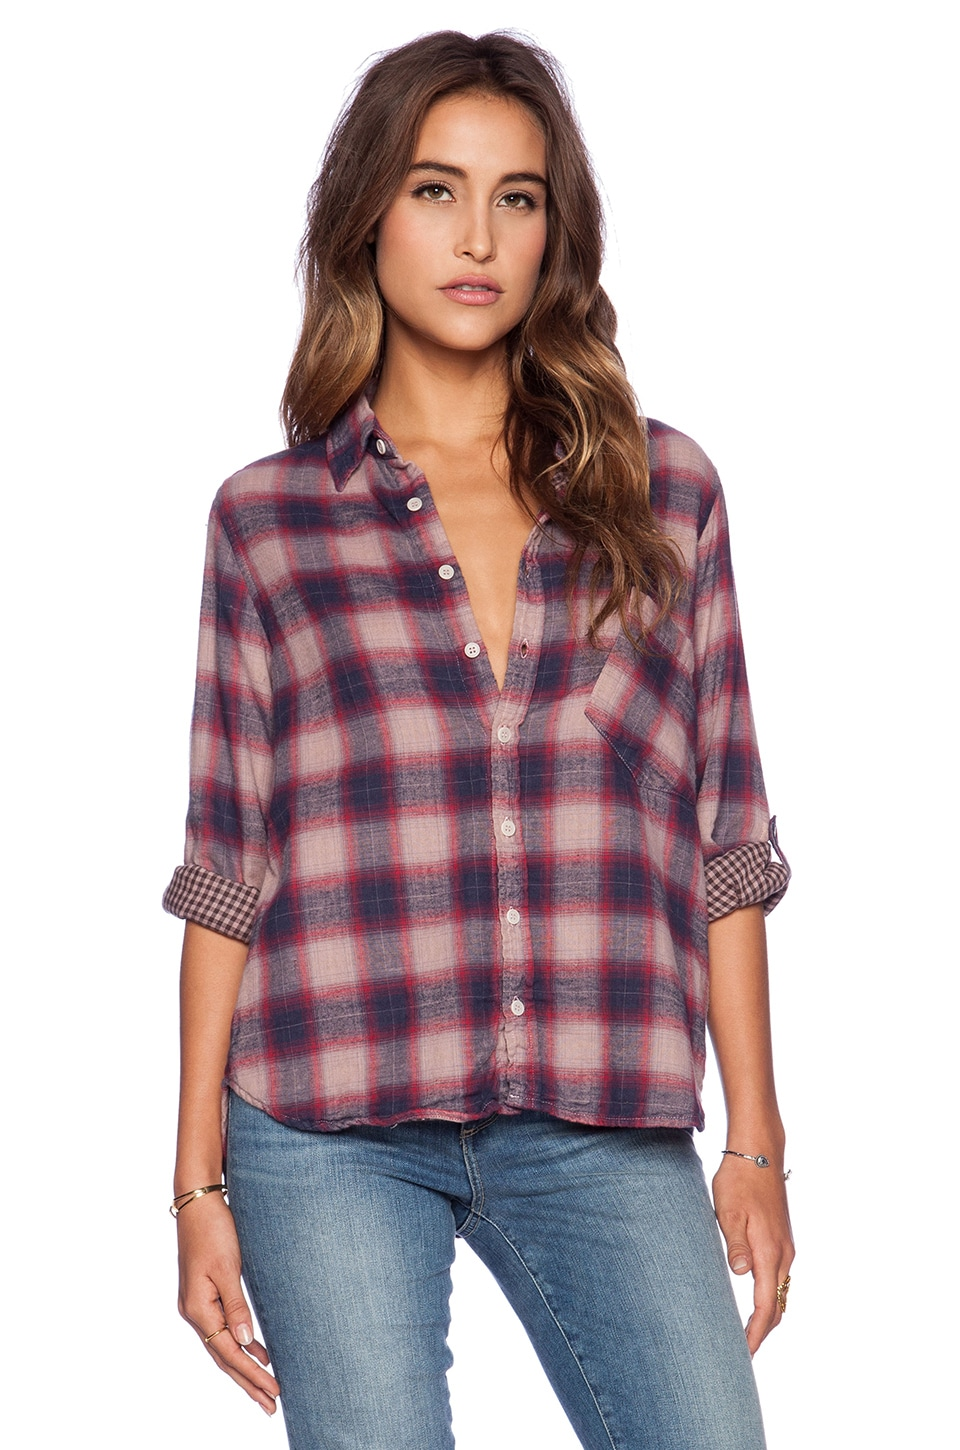 CP SHADES Jay Plaid Button Up in Tulip